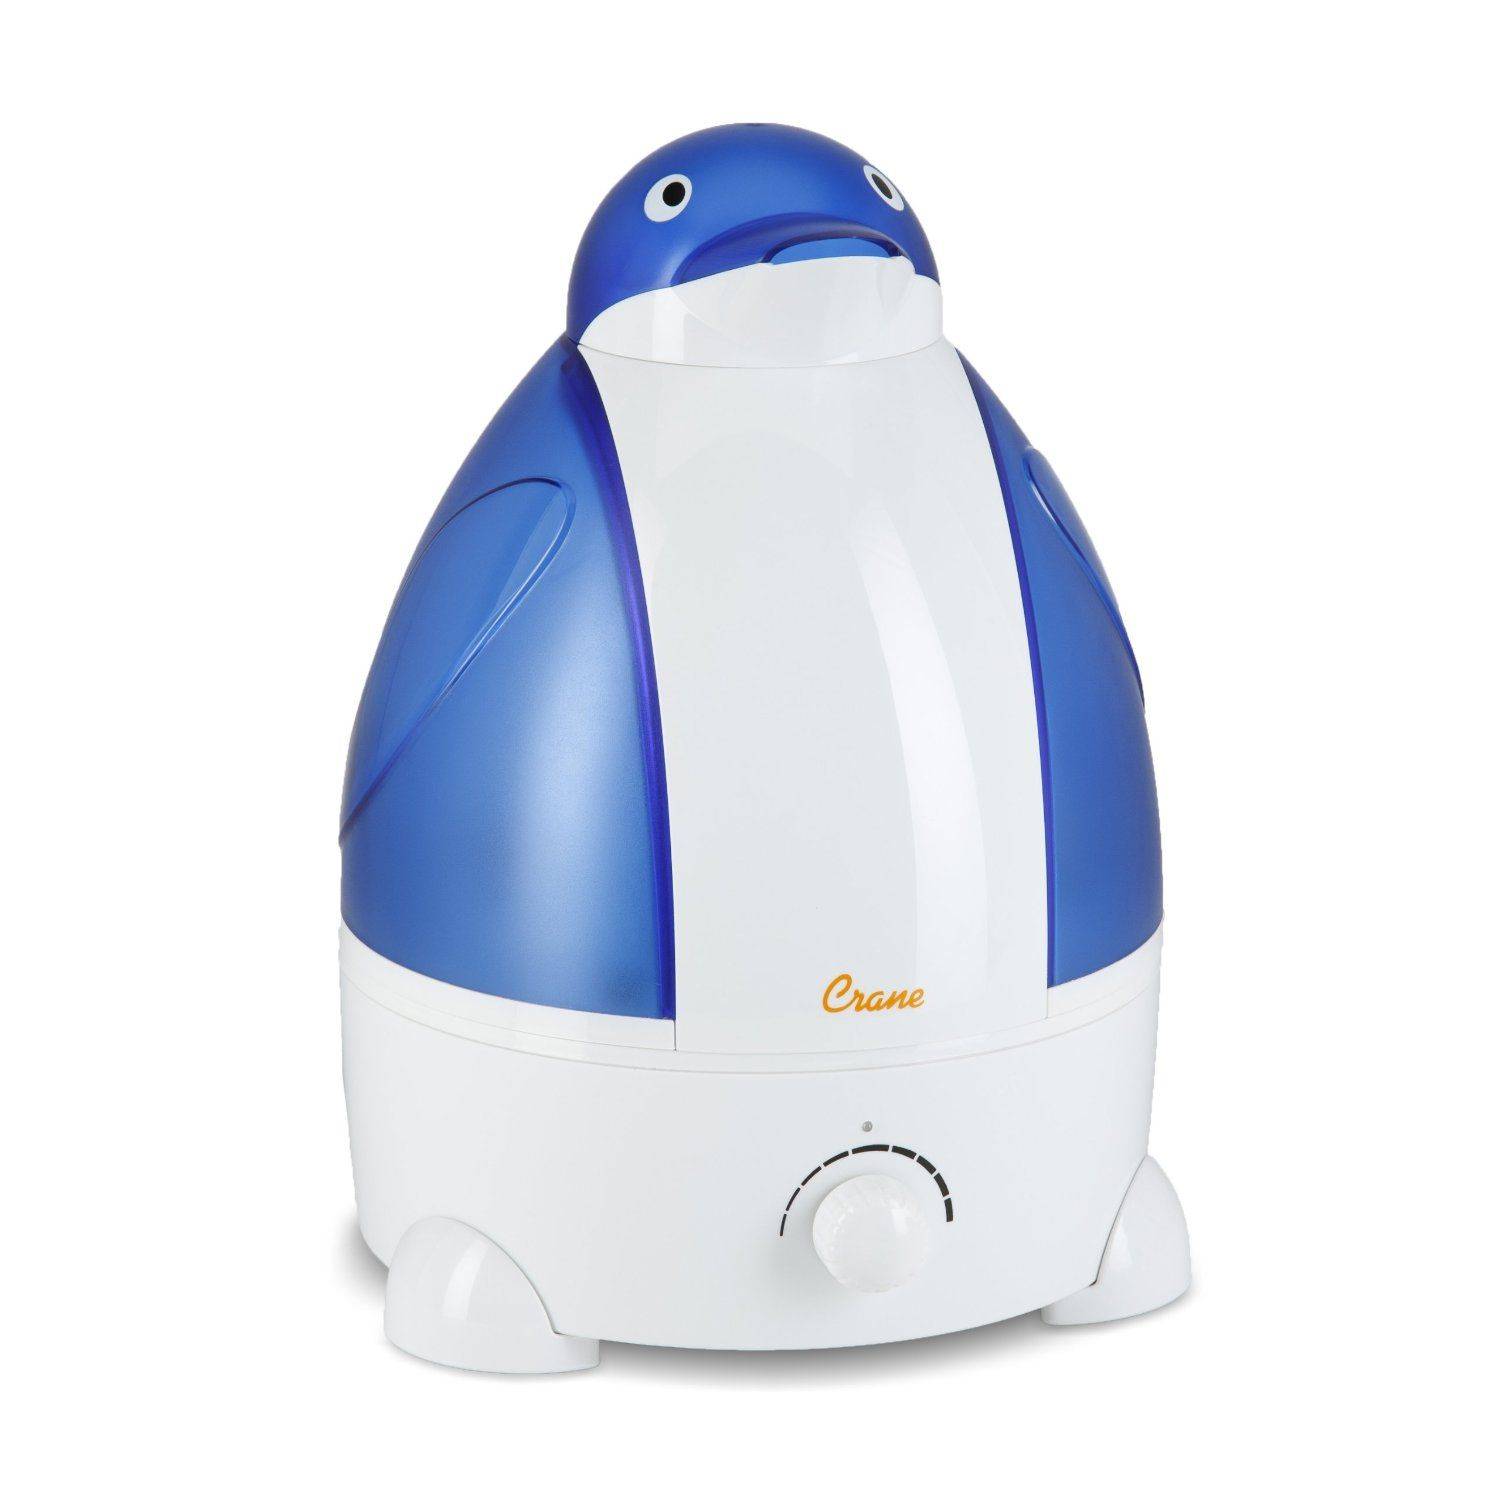 Adorable Penguin Crane Cool Mist Humidifier Only 22 68 Become A Coupon Queen Ultrasonic Cool Mist Humidifier Best Humidifier Humidifier